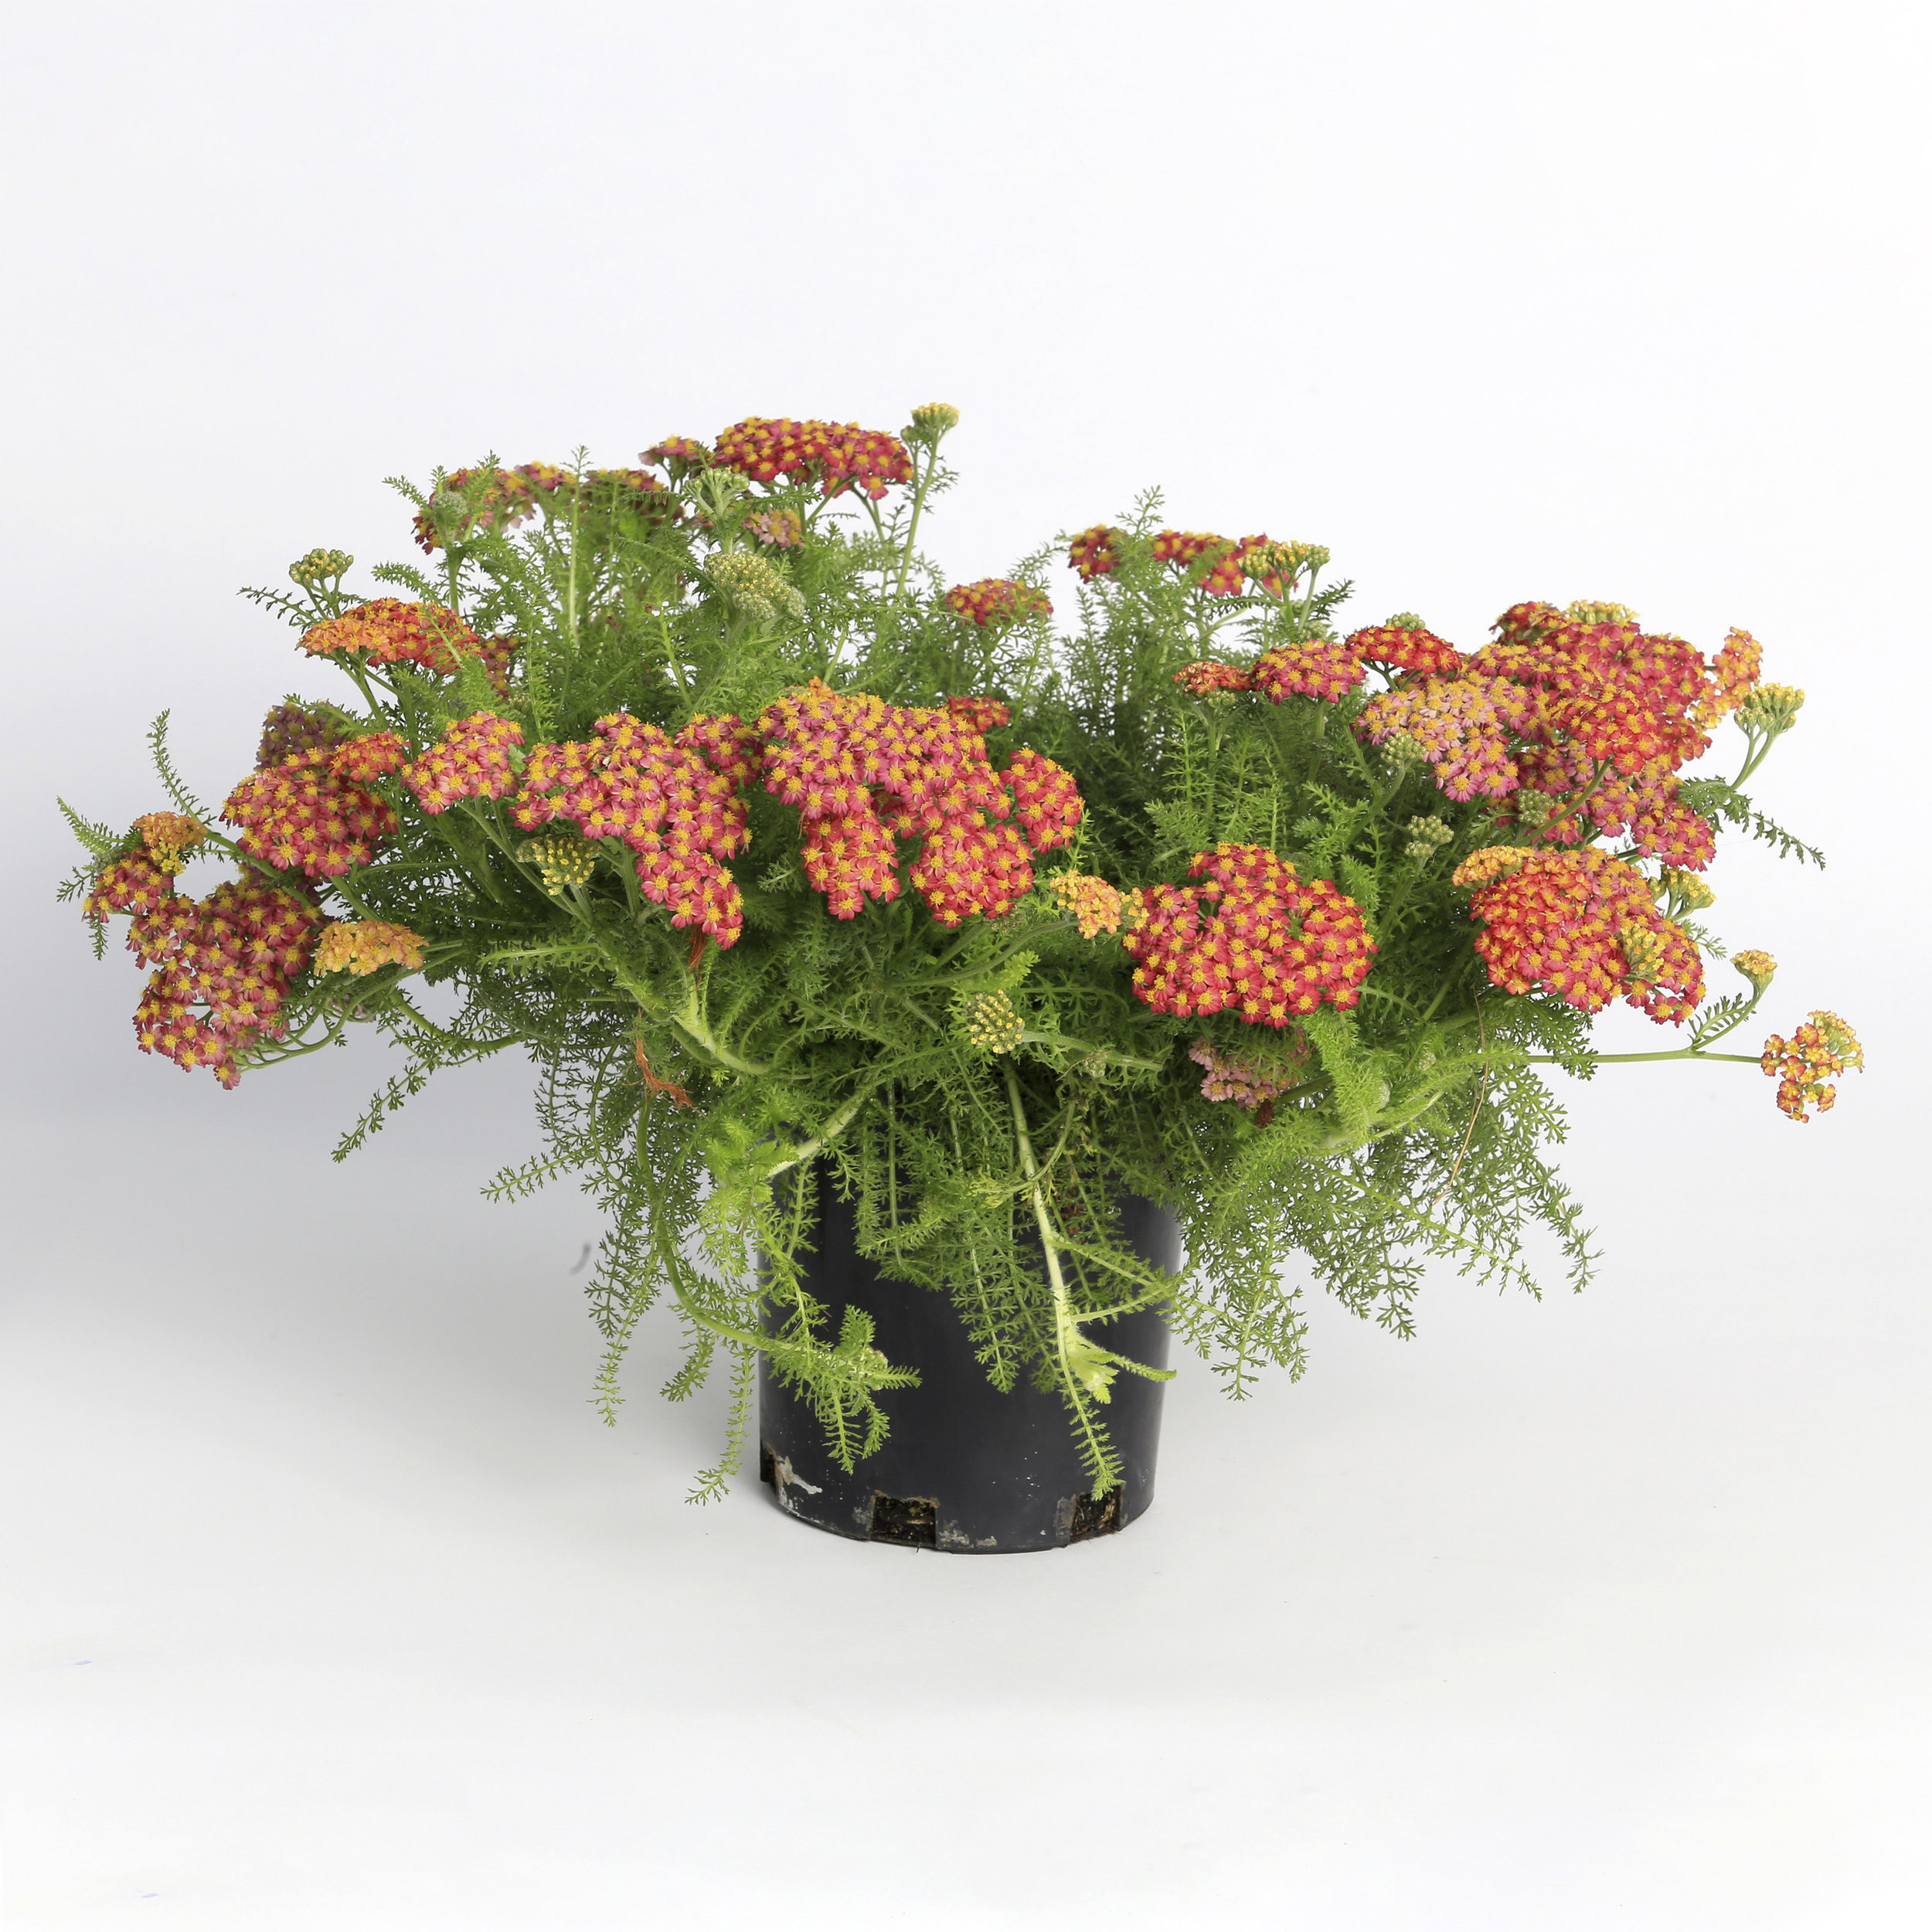 HR_Vegetative_Achillea_Desert_Eve™_Desert_Eve™_Red_70017961_1.jpg